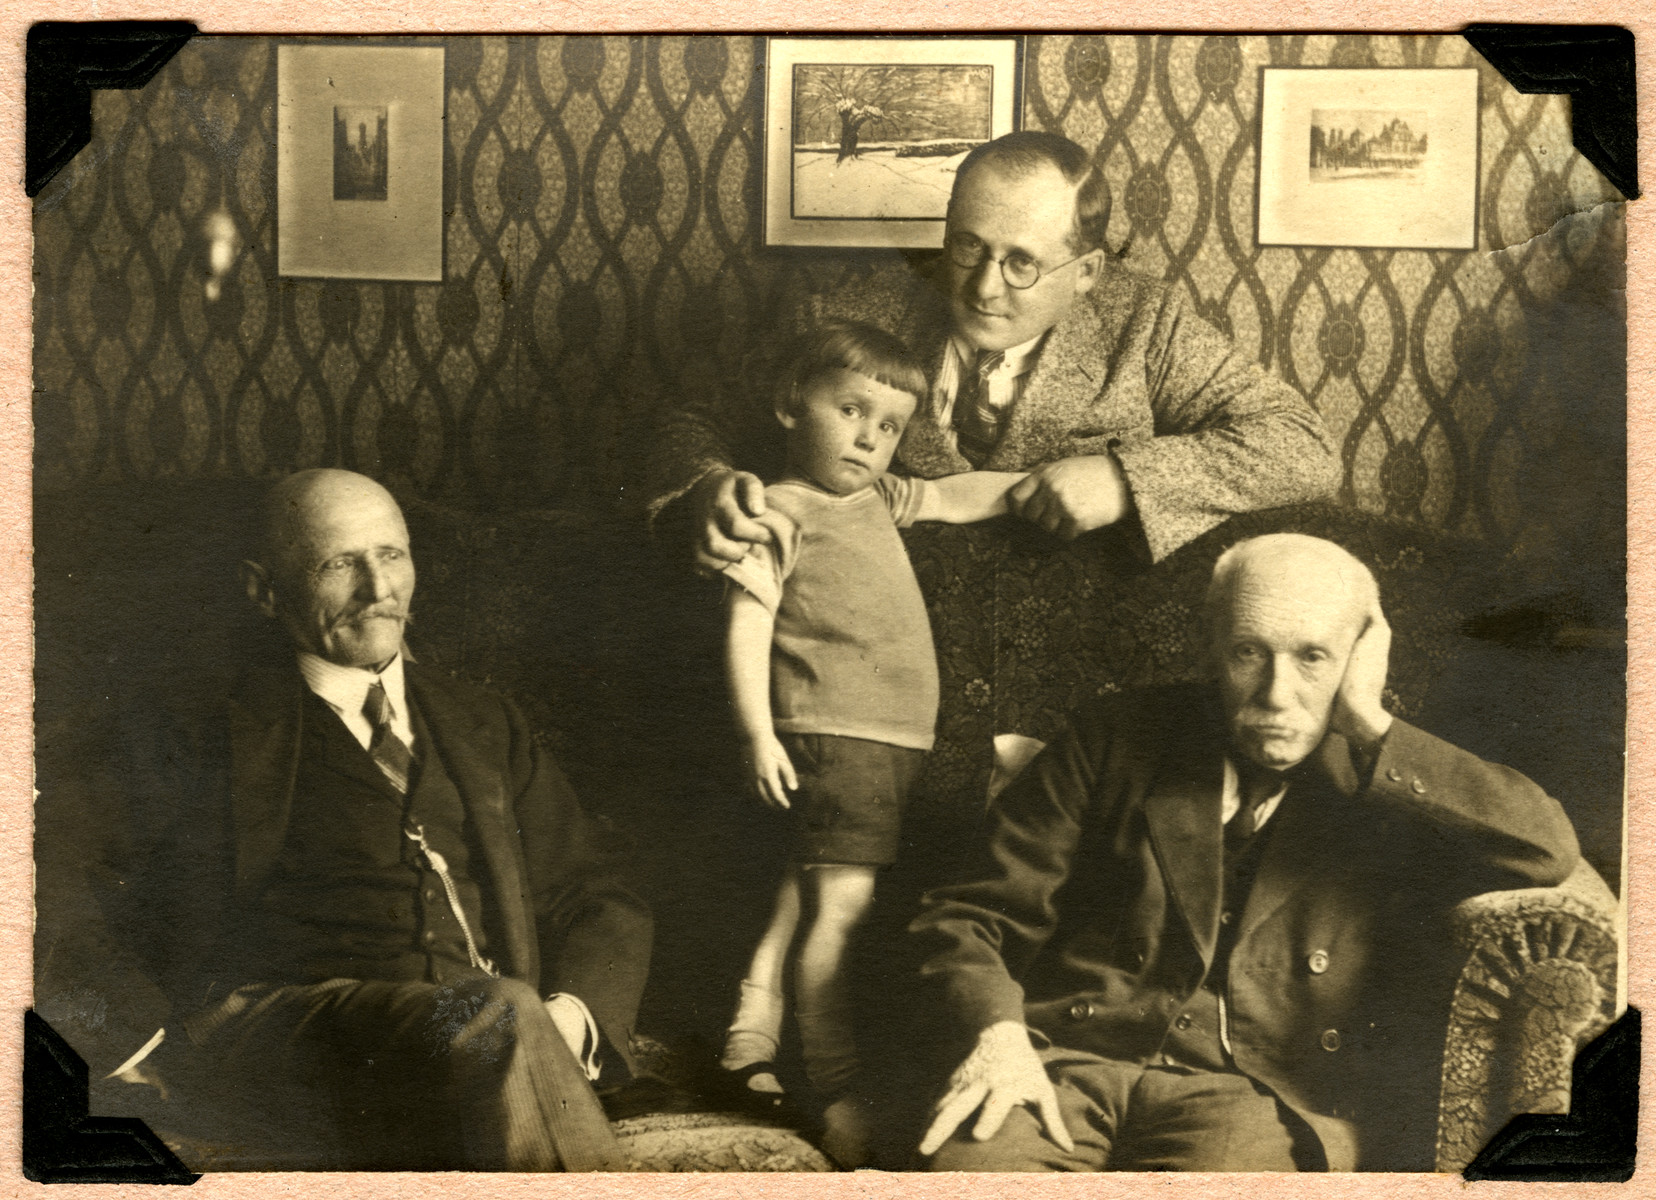 Portrait of four generations of the Feigenbaum family in their home.  From left to right are Mortiz, Kurt, Emil and Emanuel Feigenbaum.